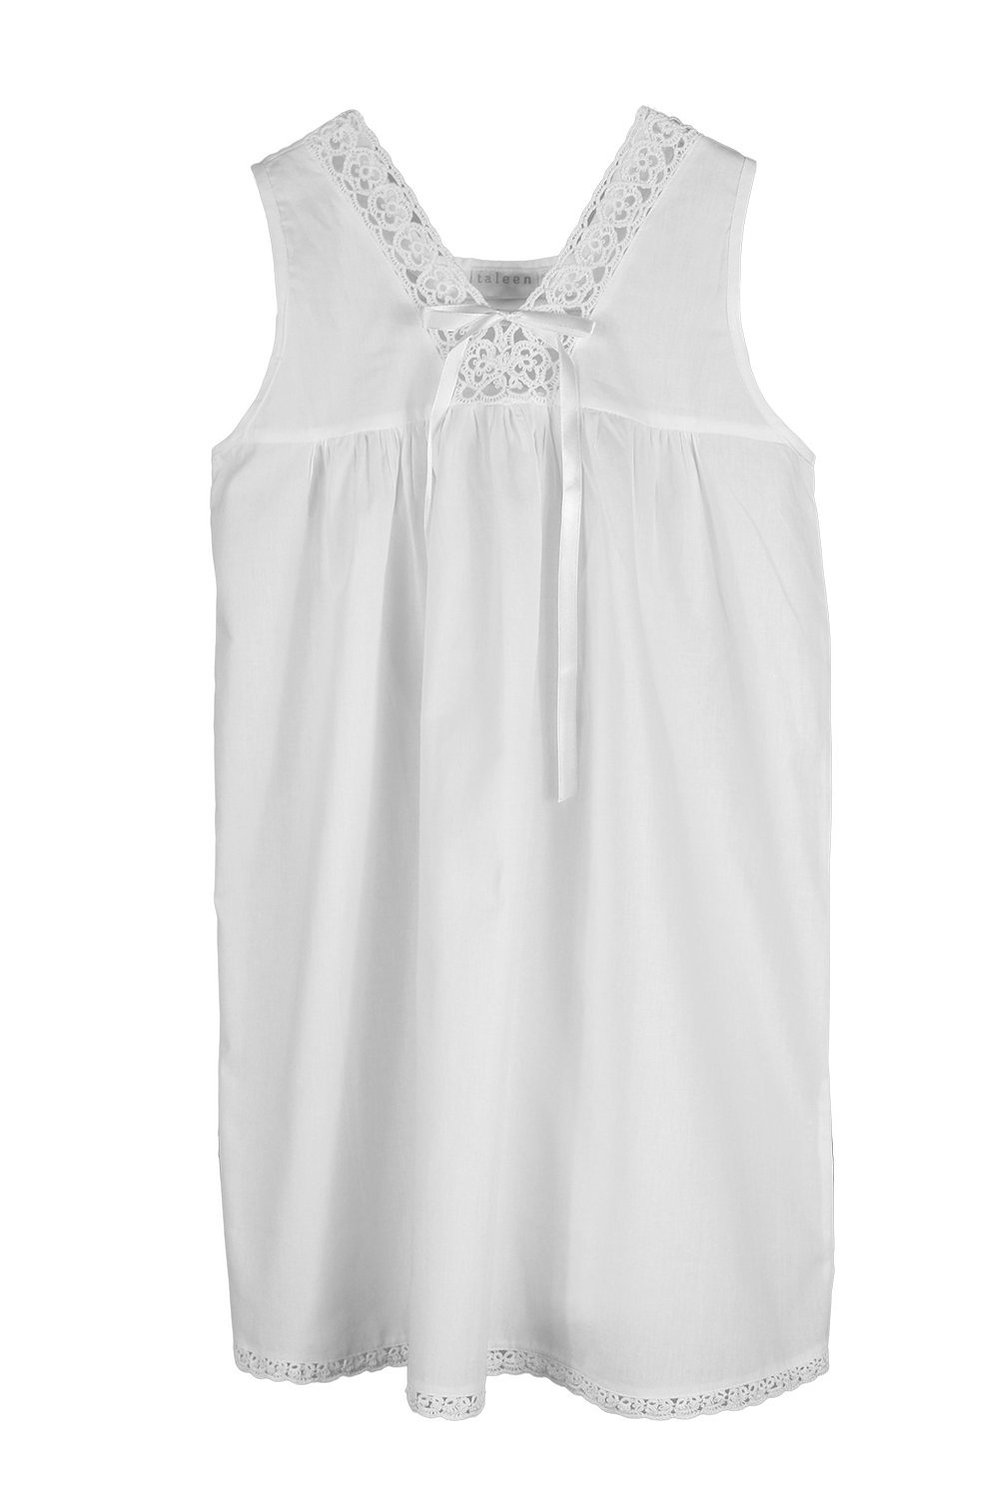 Taleen Handmade Embroidered Tatting Lace Girl Nightgown, 100% Cotton ...